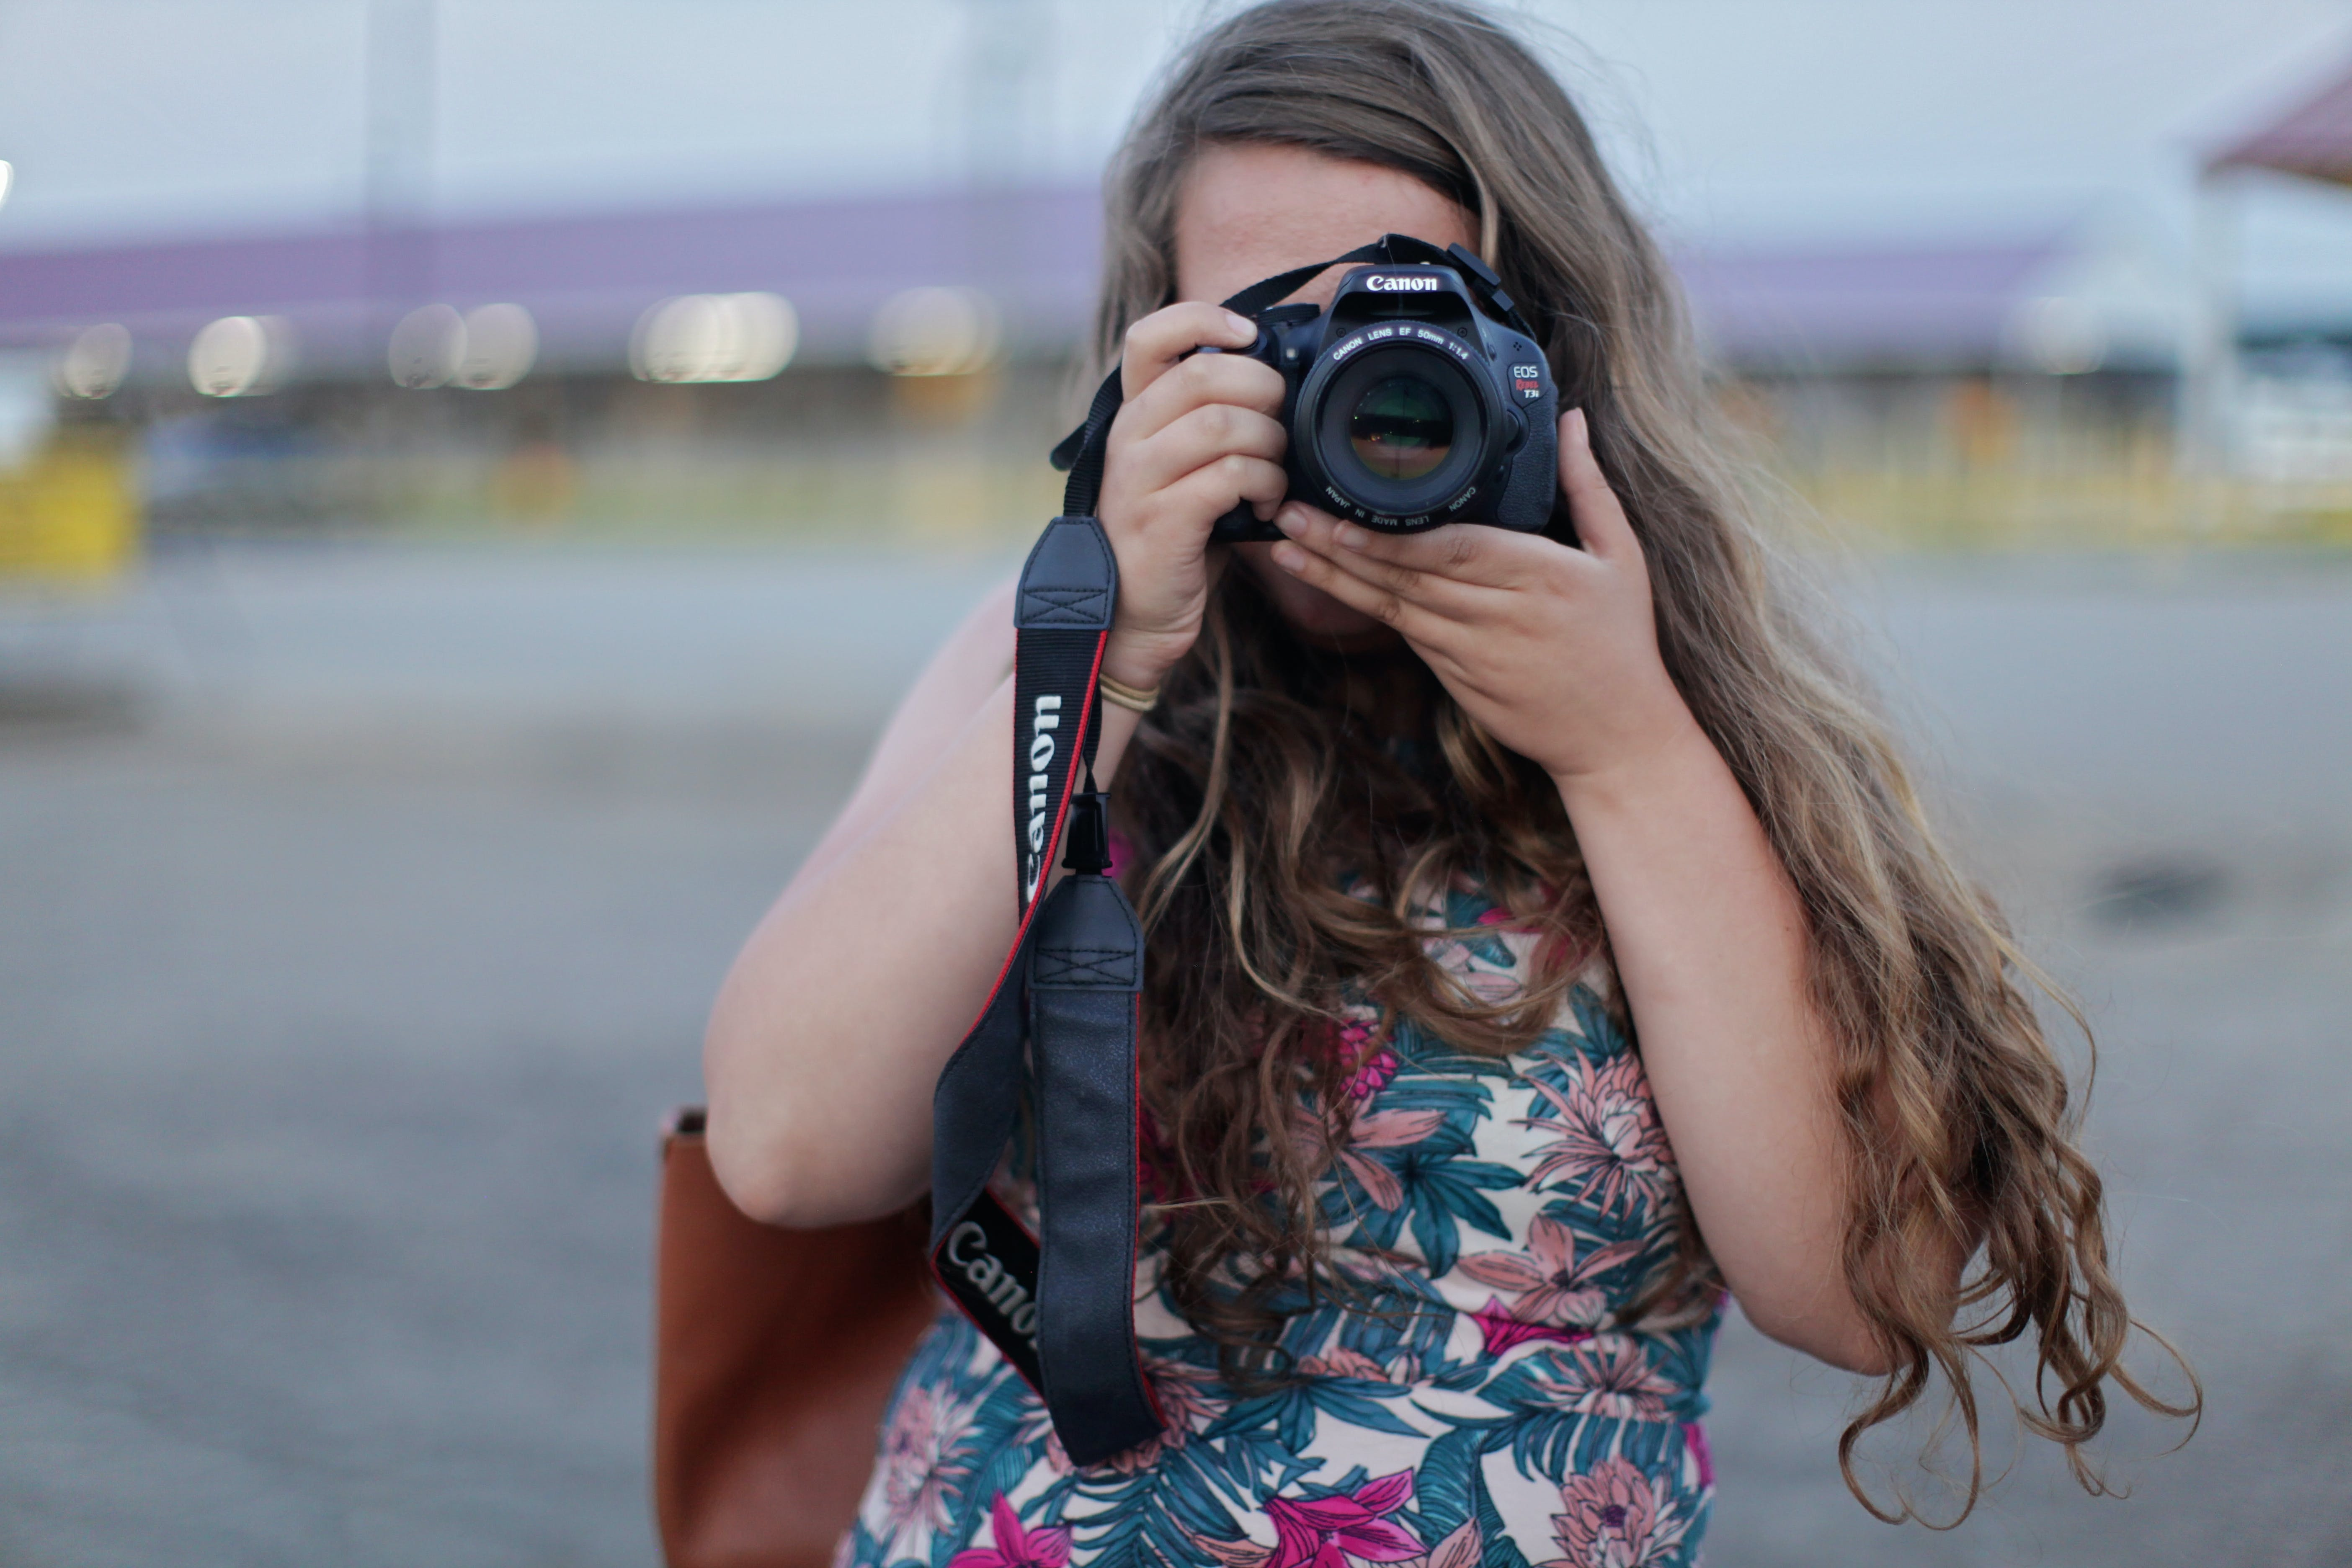 Woman Standing While Holding and Taking Picture from Canon Dslr Camera